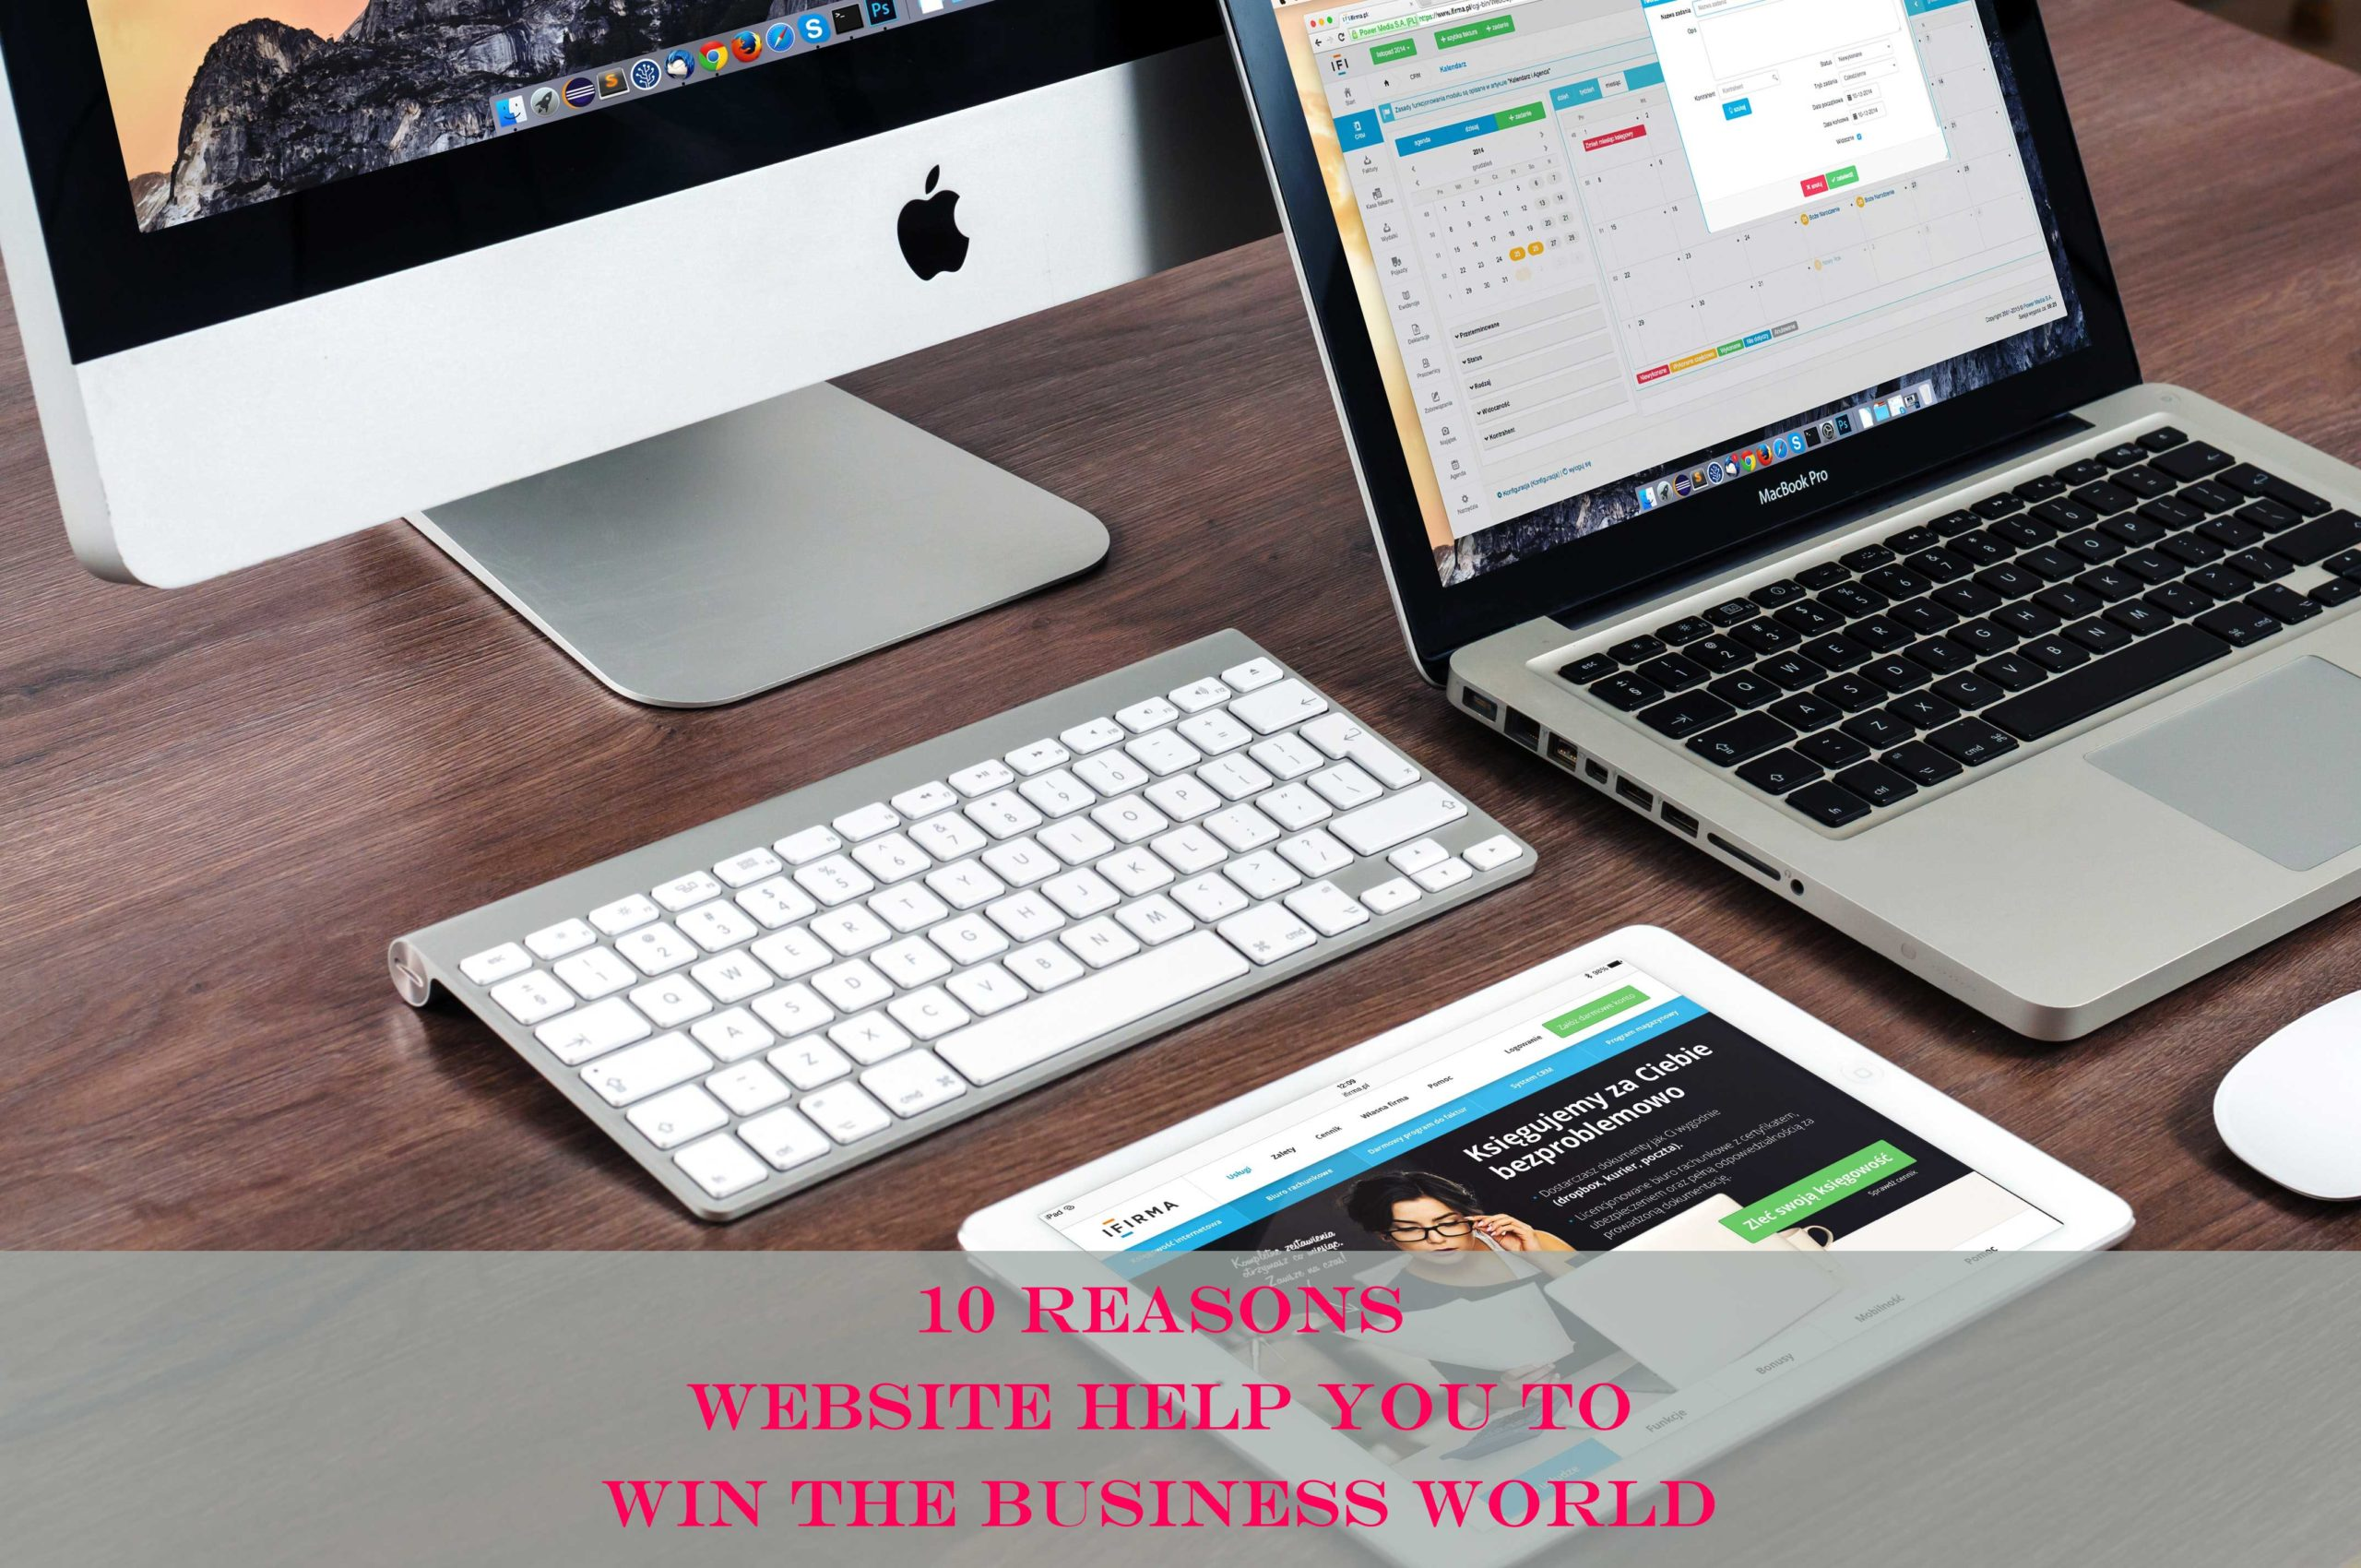 10 reasons website could help you to win the business world